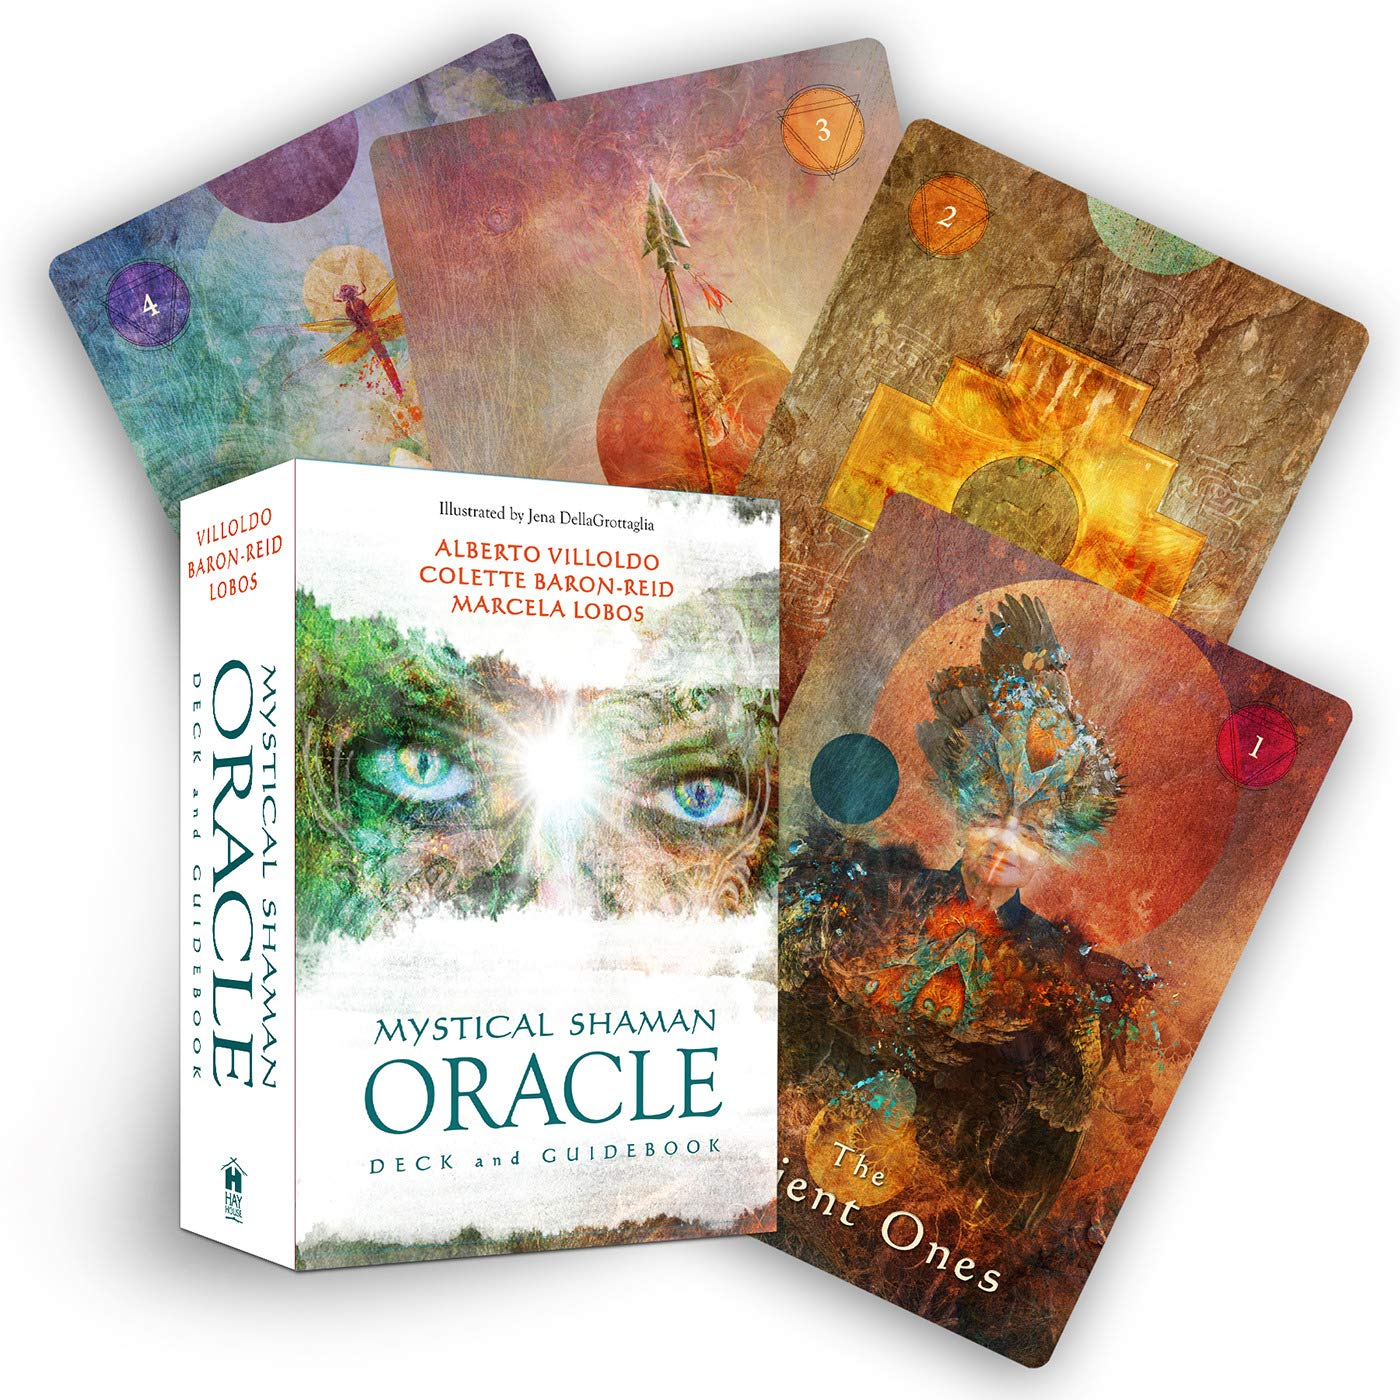 Mystical Shaman Oracle Cards by Hay House Inc.